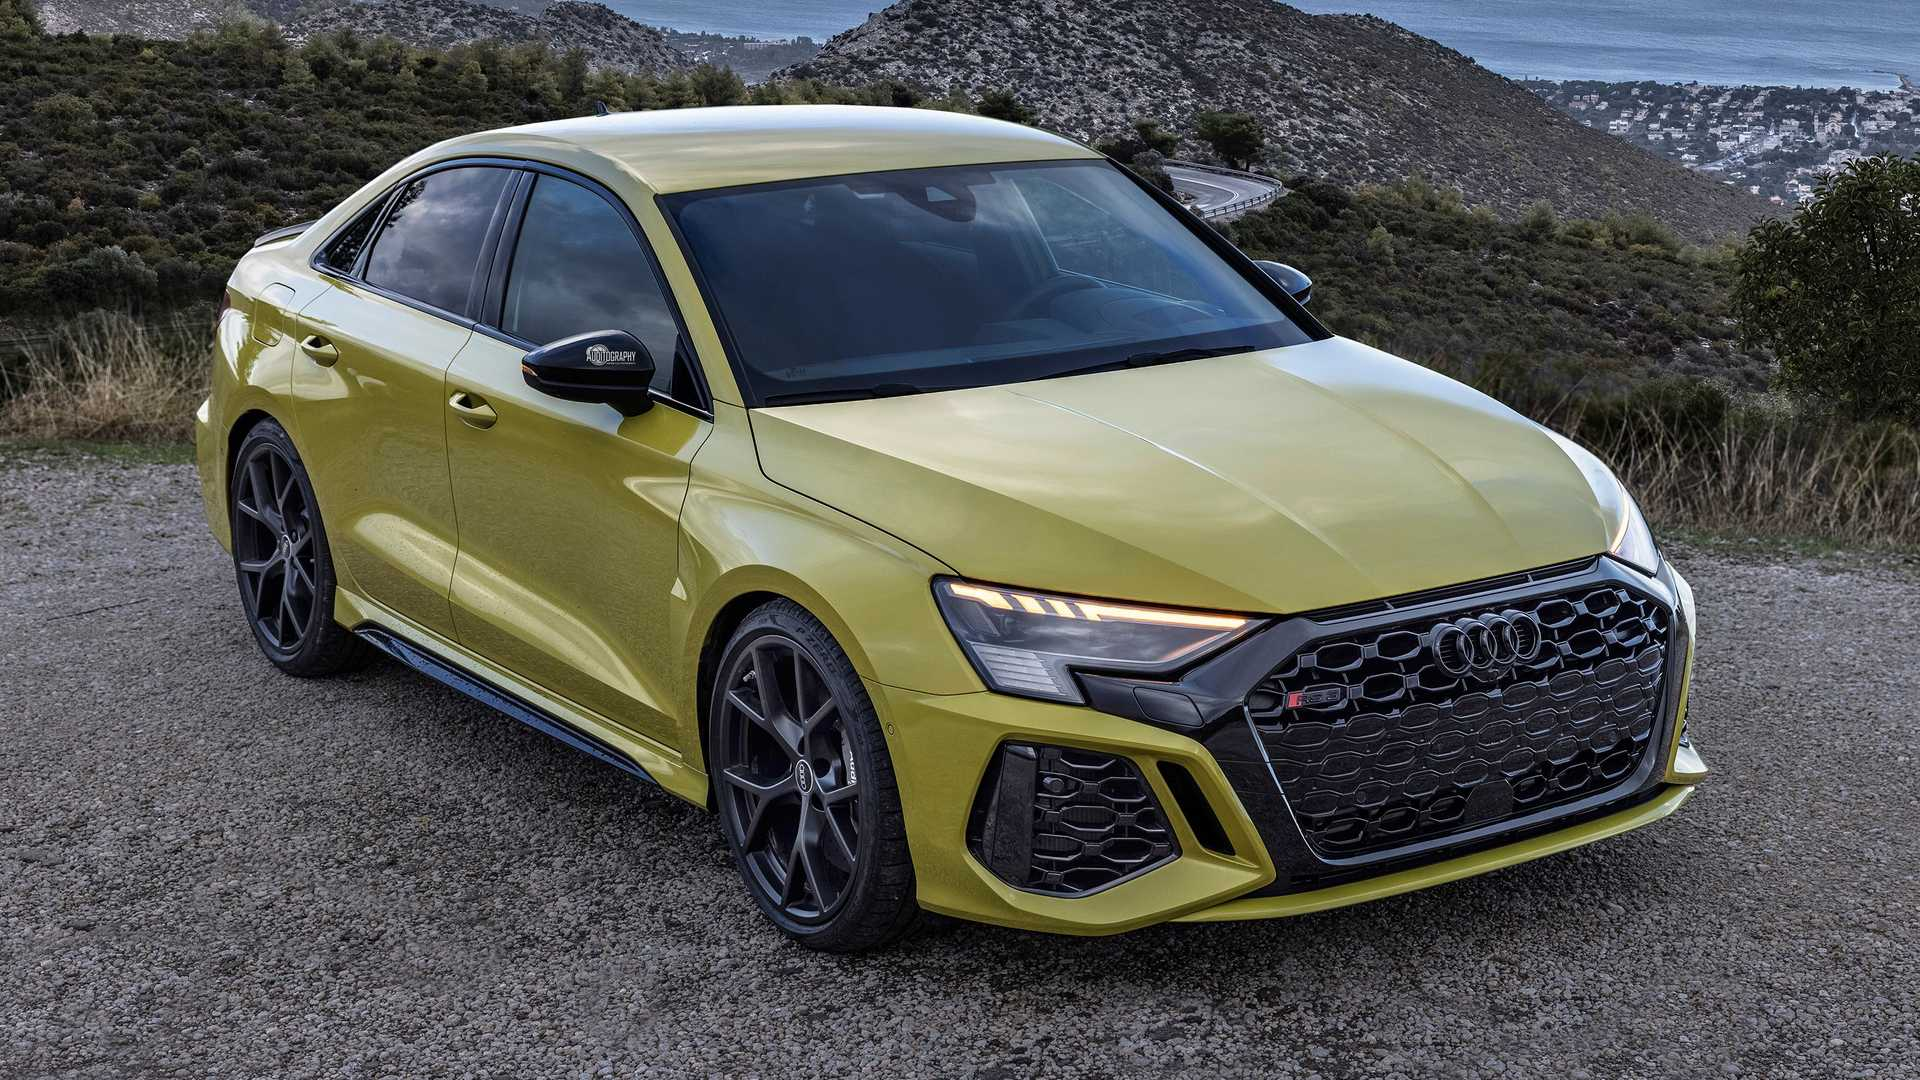 See 2022 Audi RS3 Sedan Hit 62 MPH (100 KM/H) In Only 3.1 Seconds - Motor1